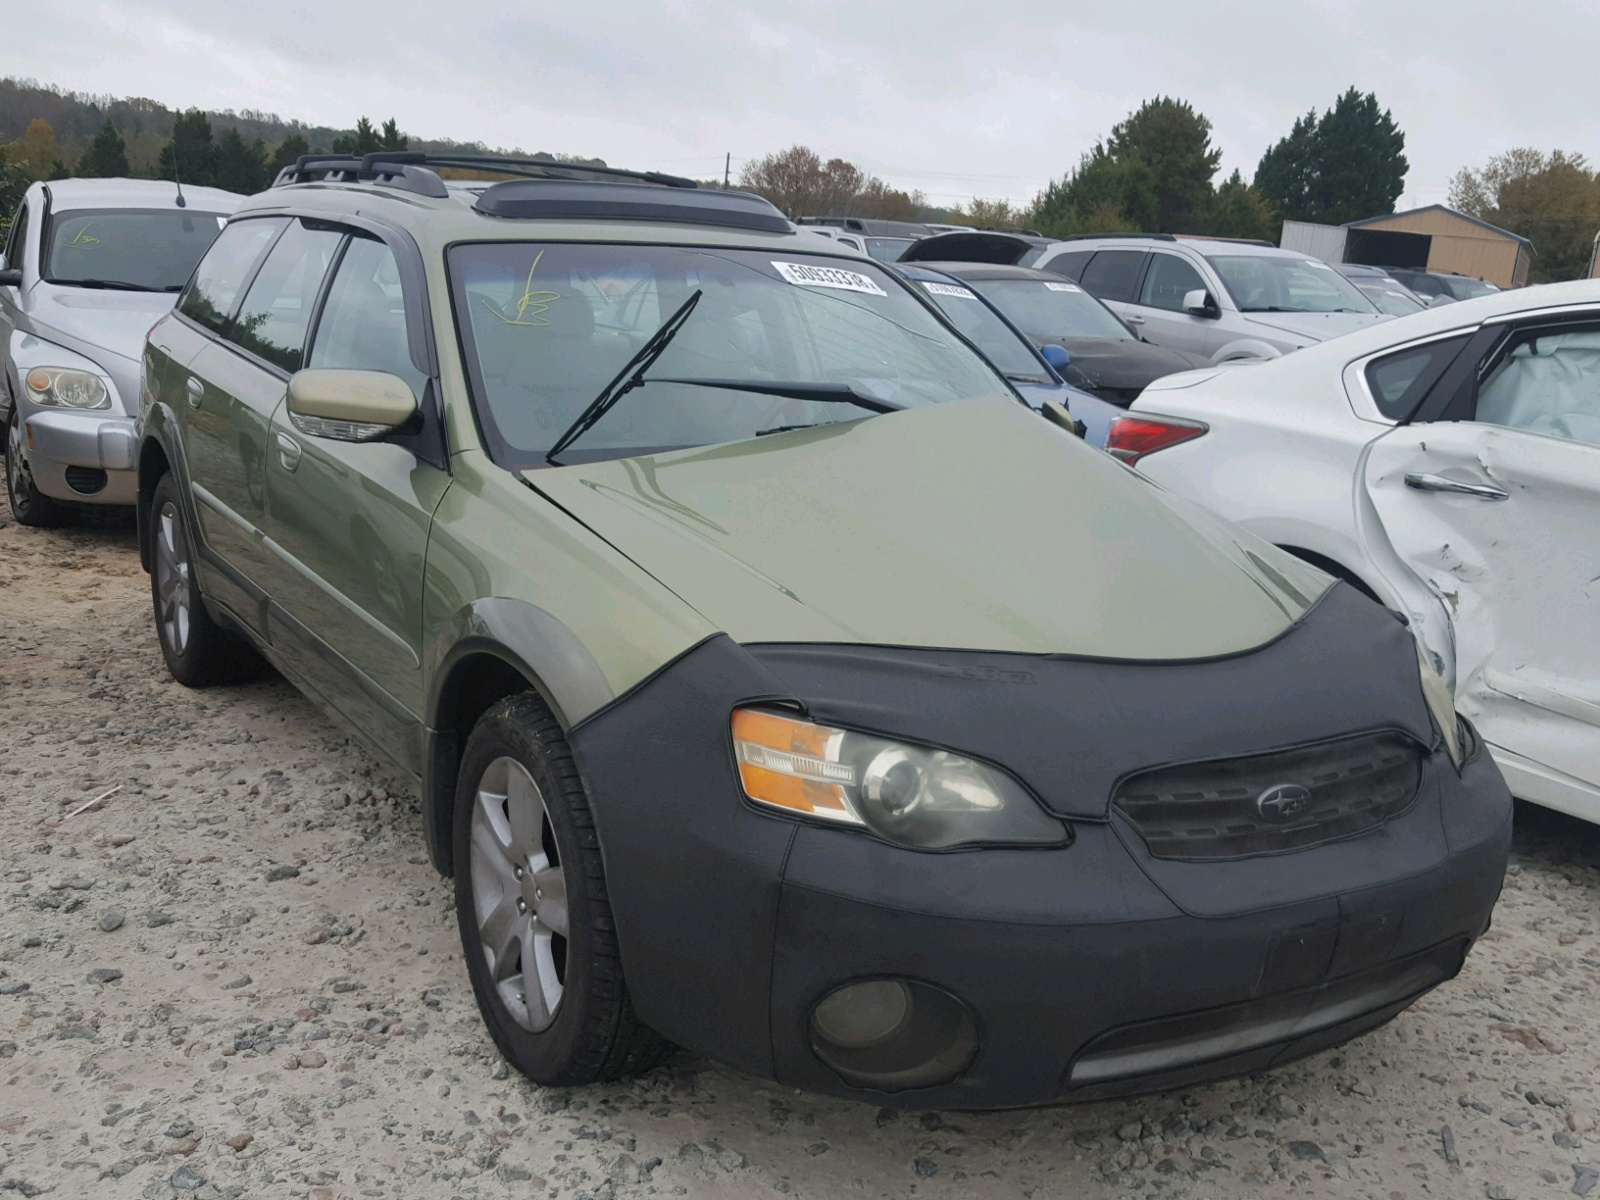 Salvage 2005 Subaru LEGACY OUTBACK for sale